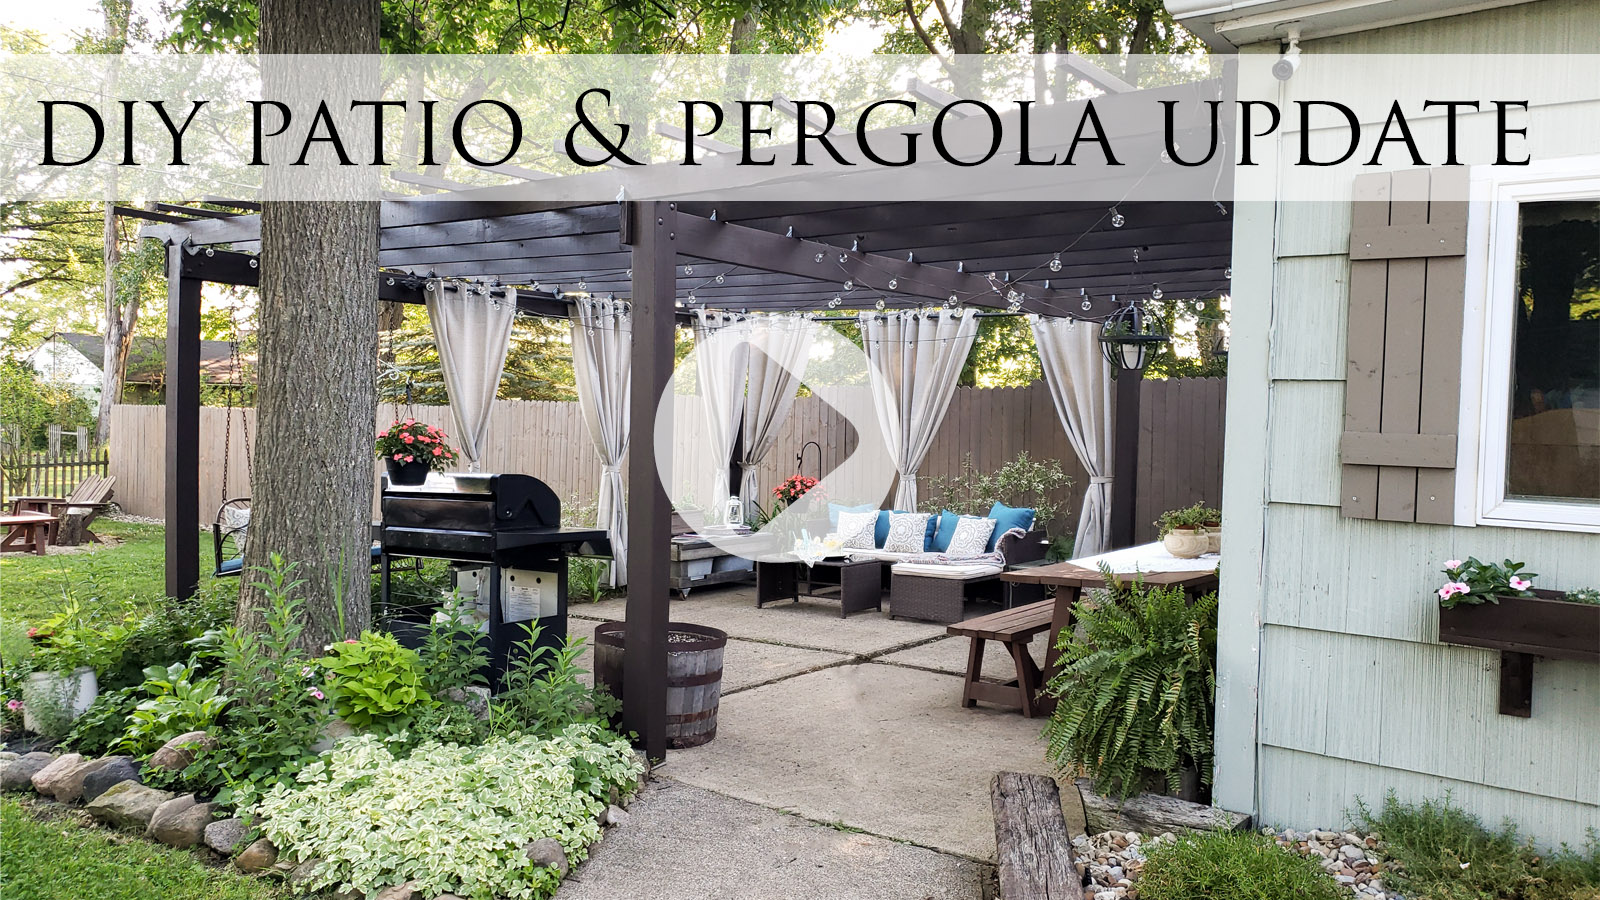 DIY Patio & Pergola Update with Video Tour by Larissa of Prodigal Pieces | prodigalpieces.com